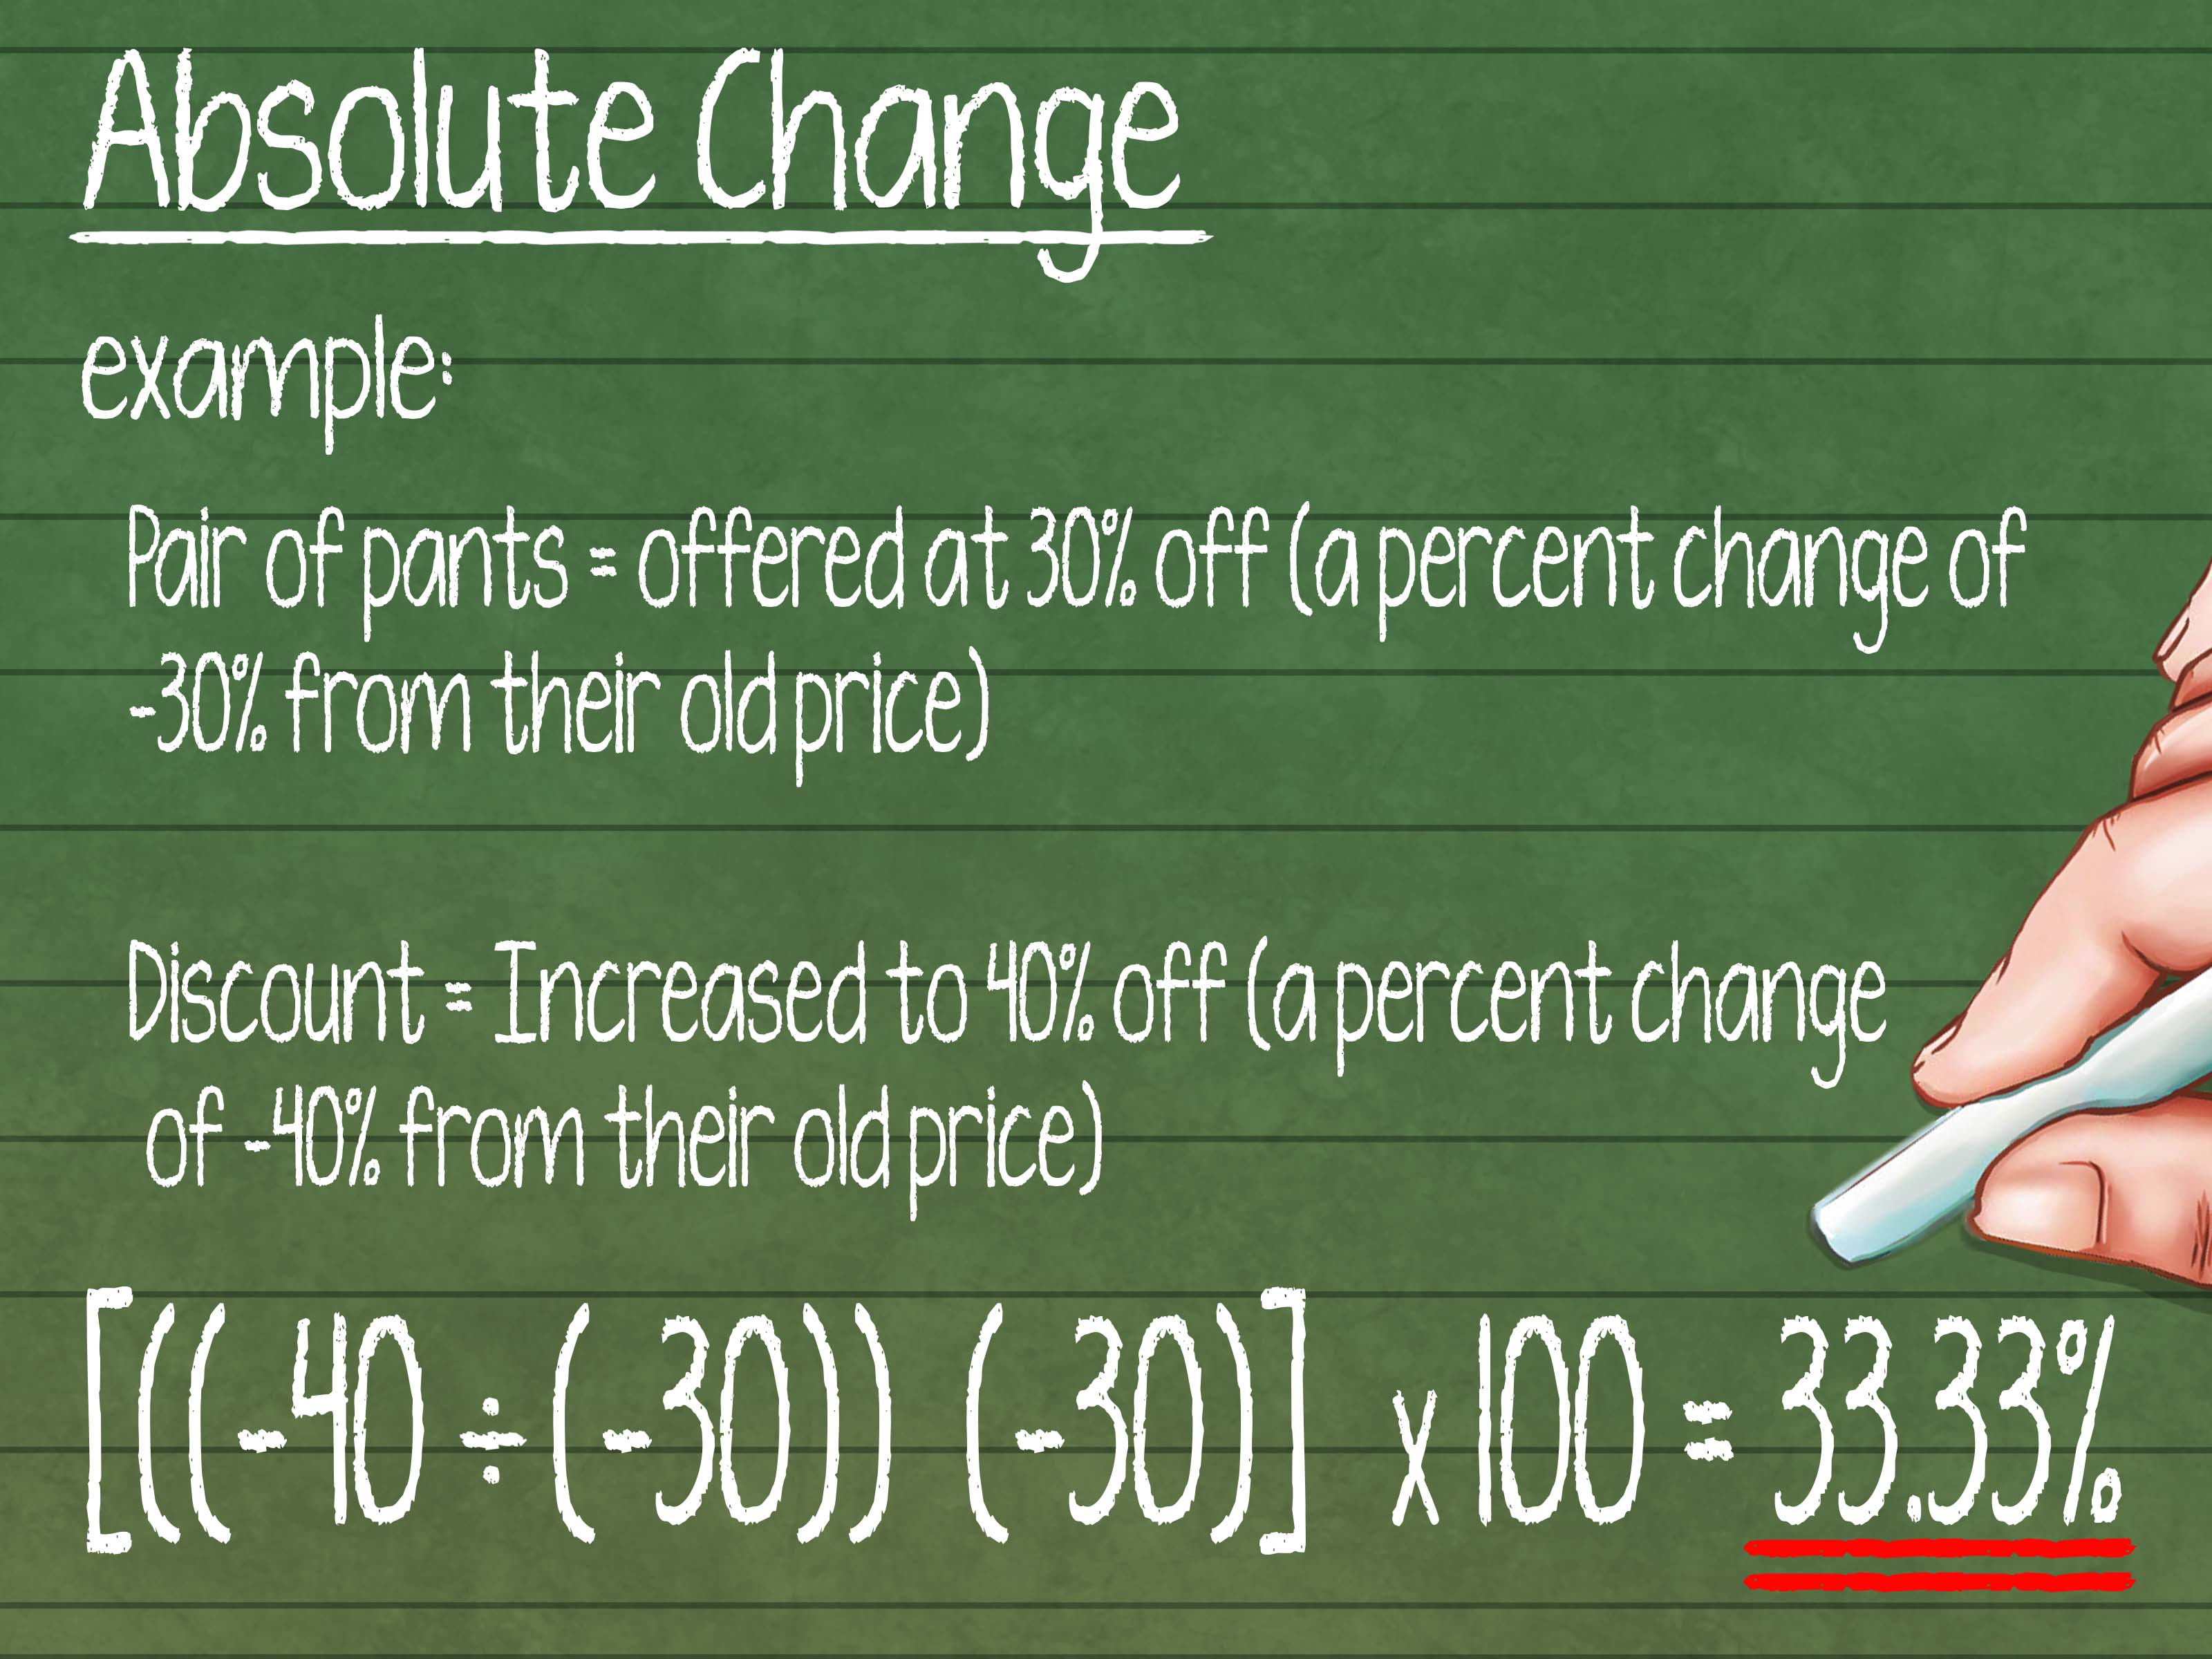 How To Calculate Percent Change With Calculator